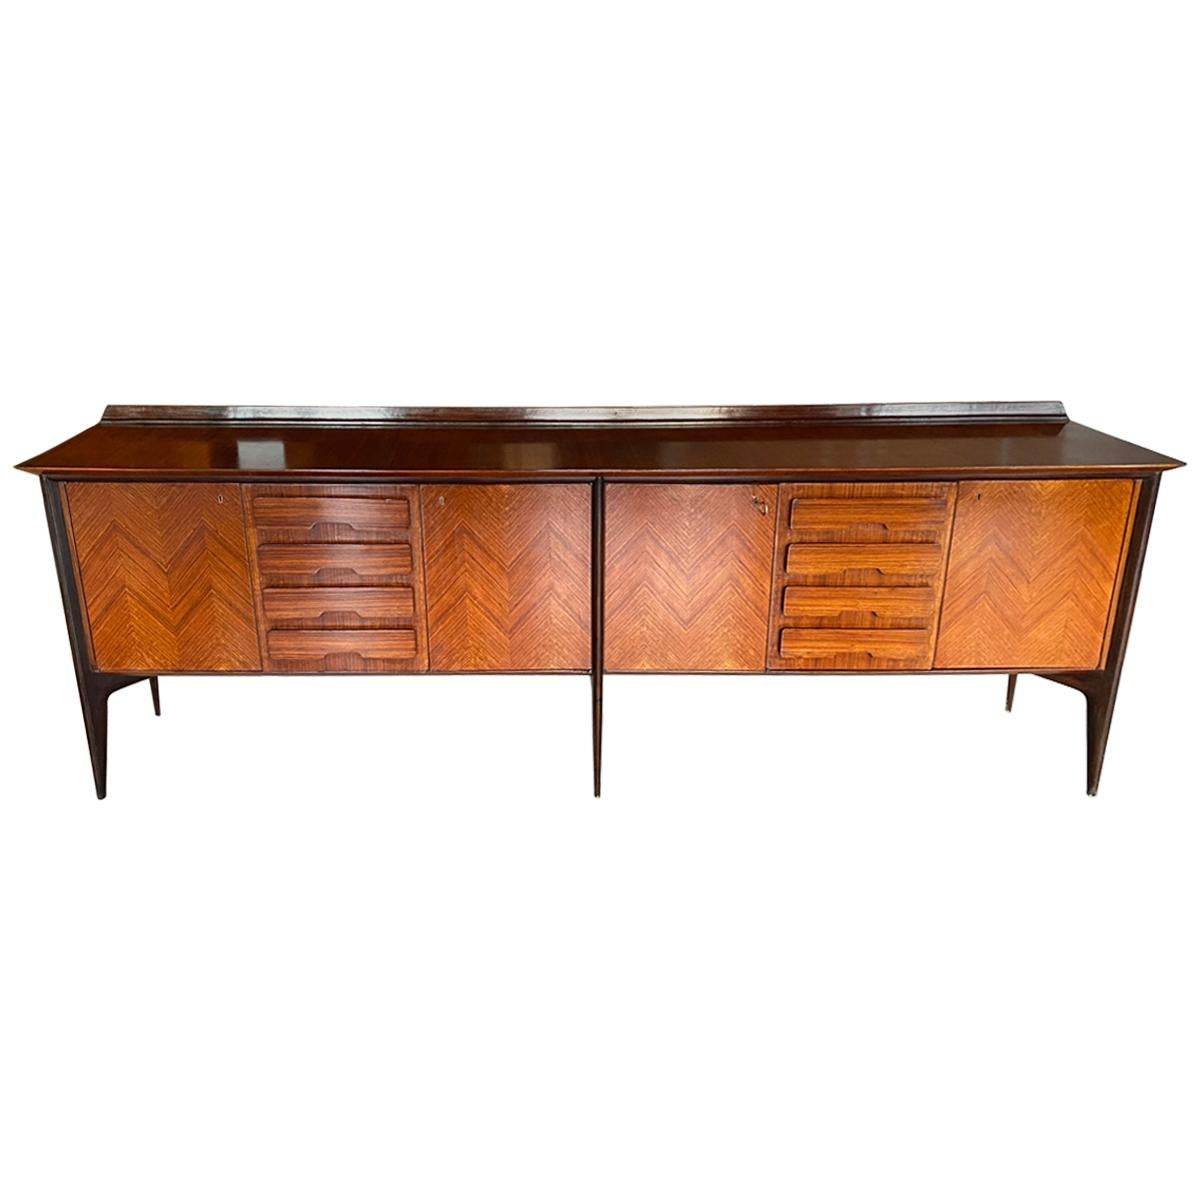 Sideboard by Ico Parisi